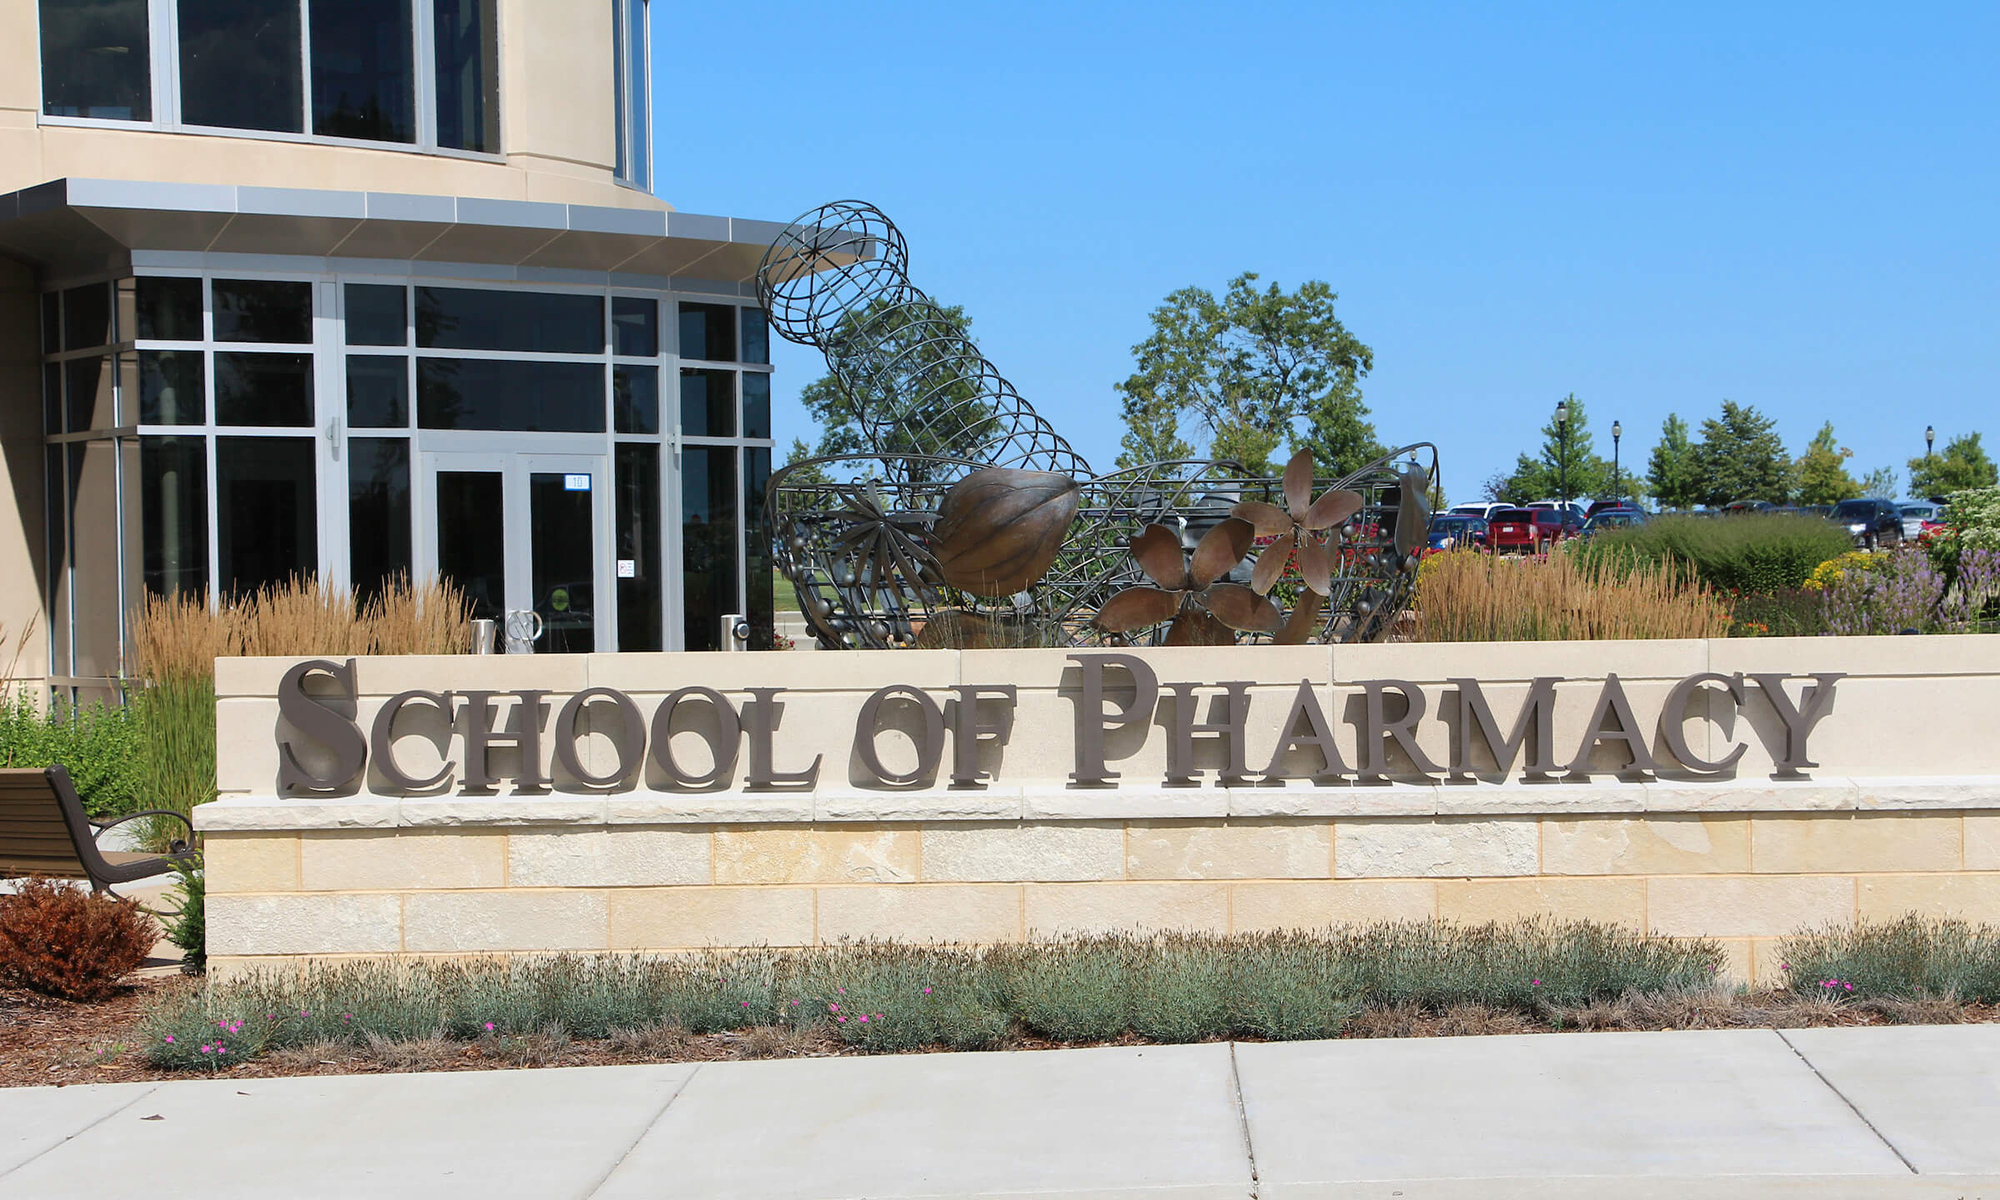 CUW's School of Pharmacy exterior